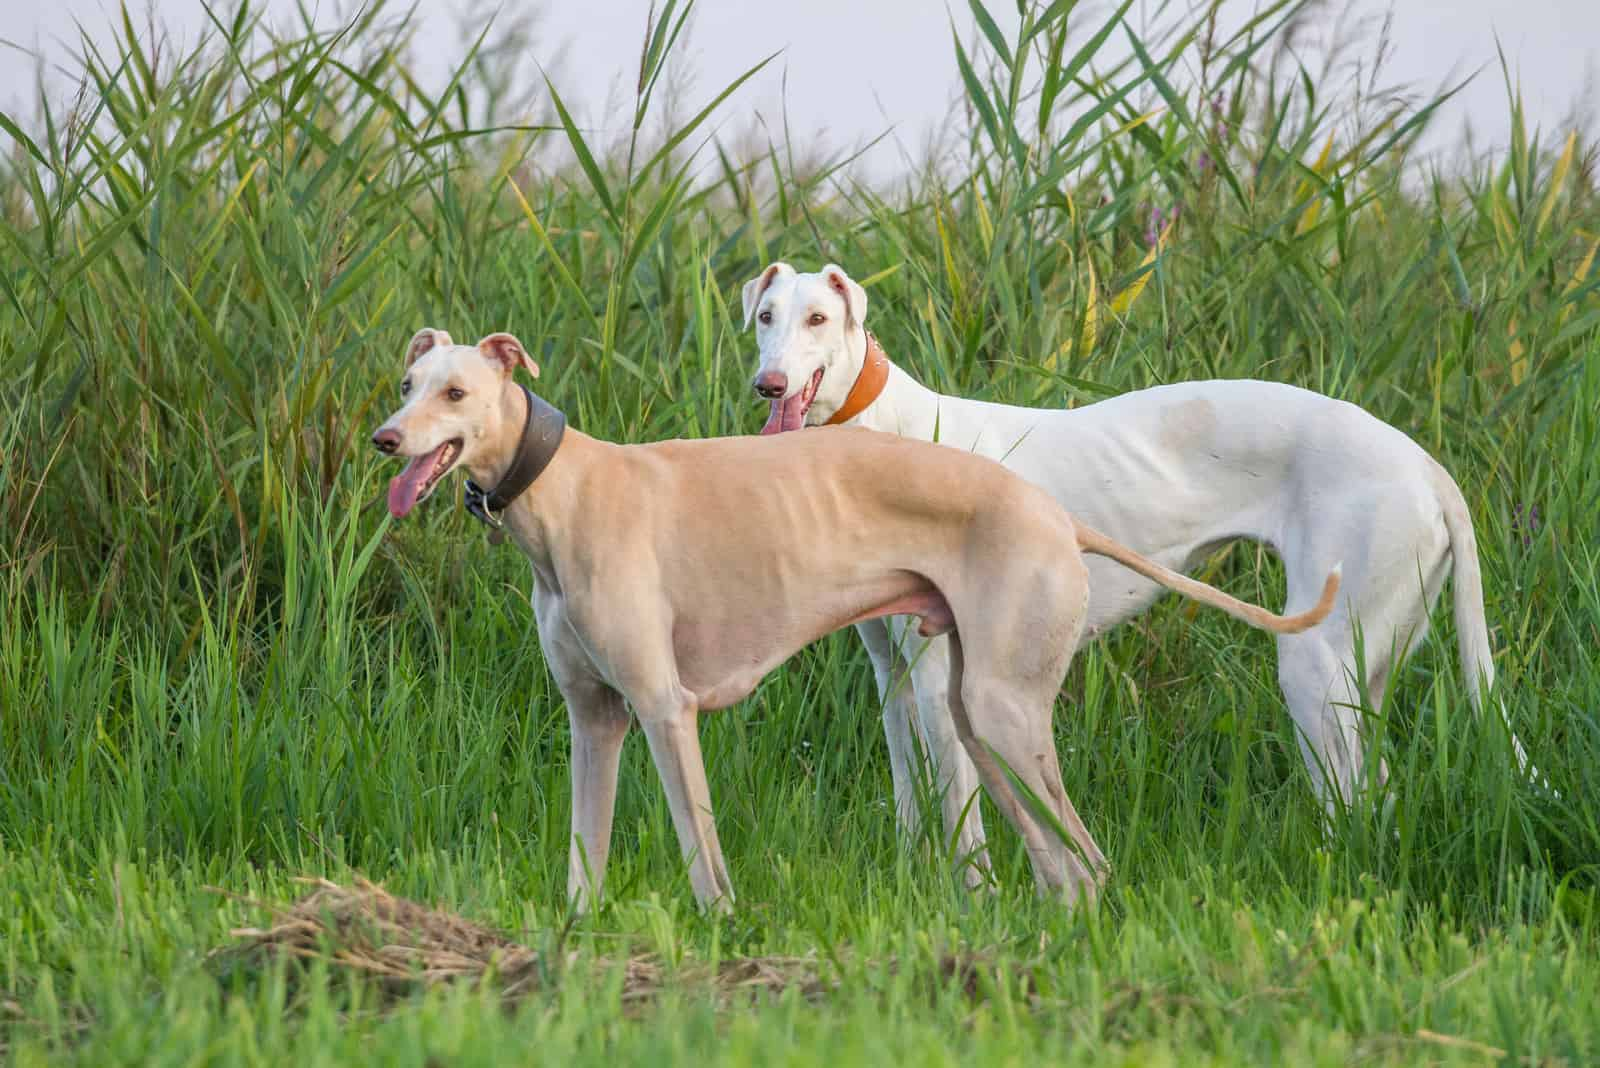 Two greyhound dogs standing on the grass outdoors